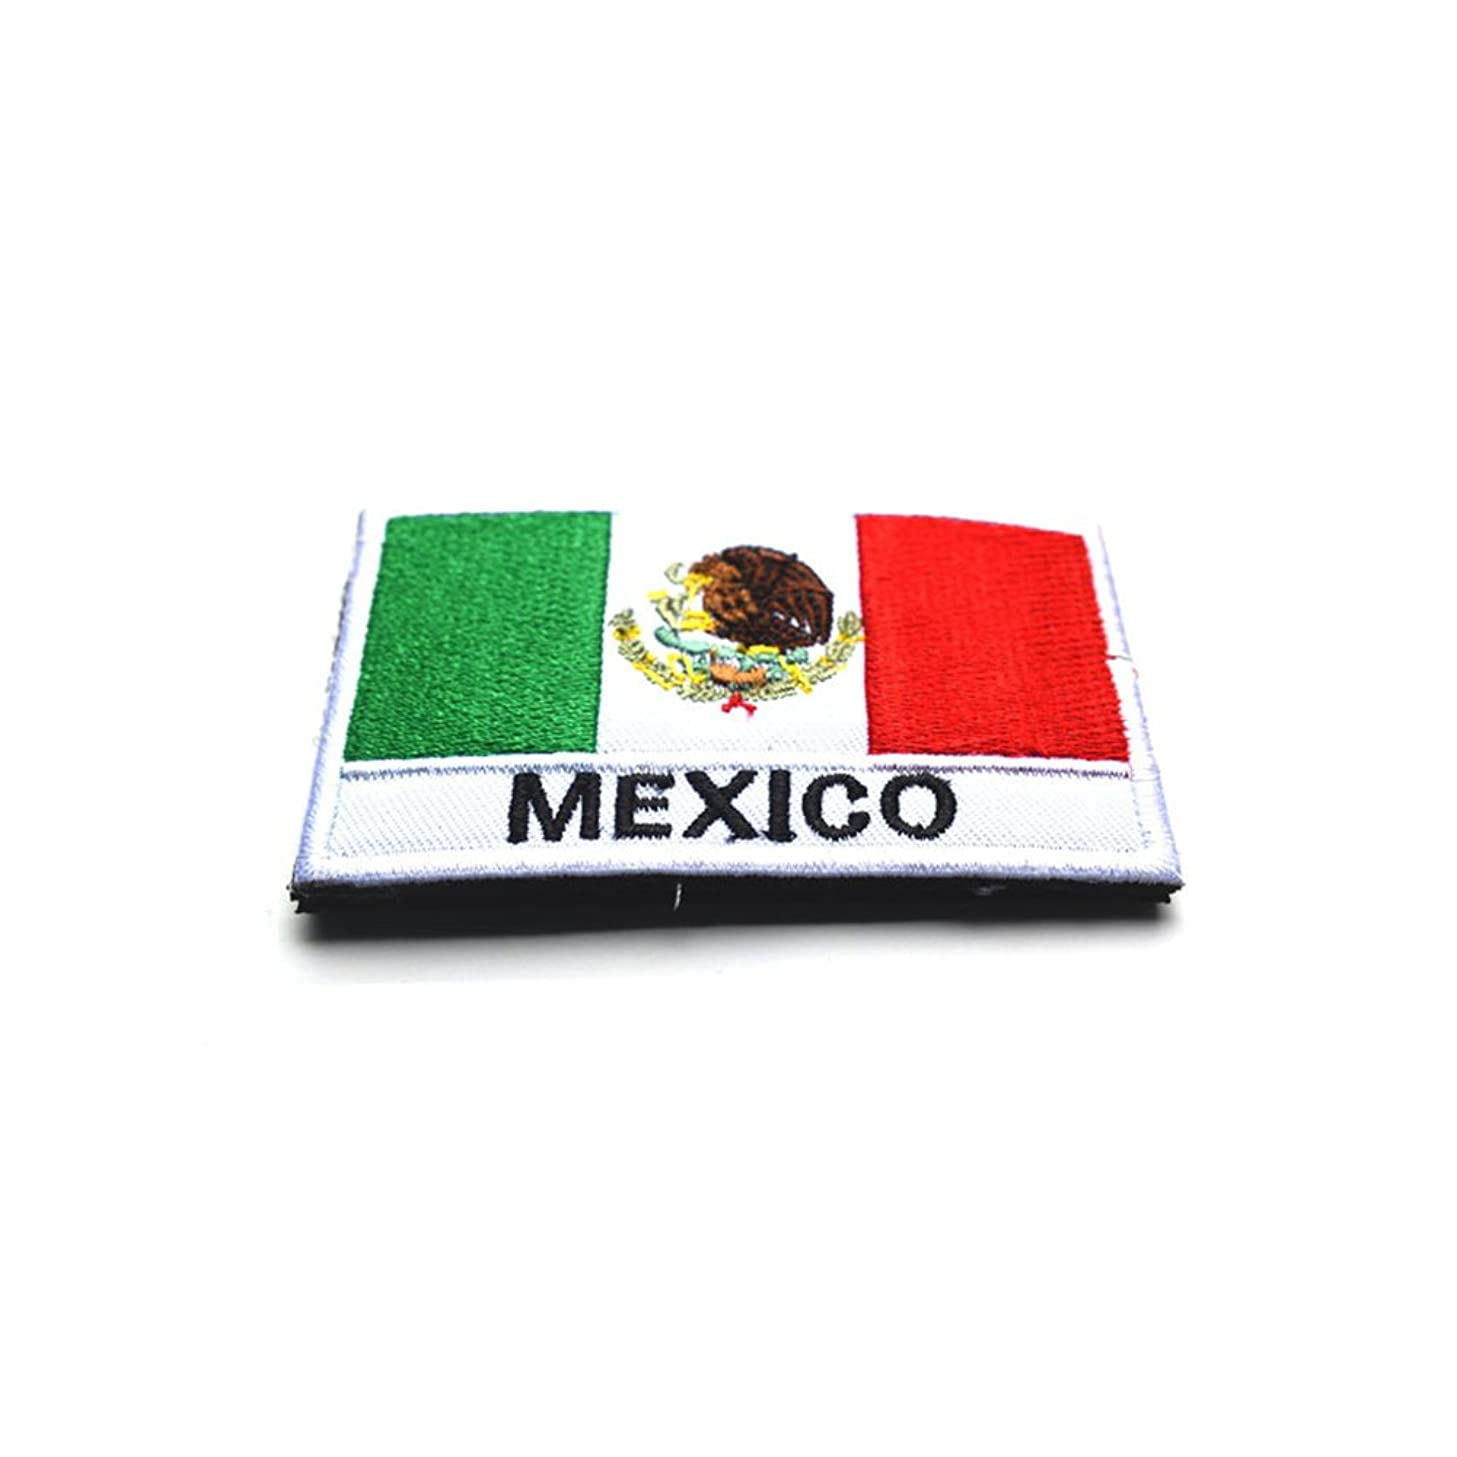 Toonol Embroidery Badge Mexican National Flag Of Mexico Military Embroidered Badges Tactical Patch For Outdoor Clothing Cap Bag